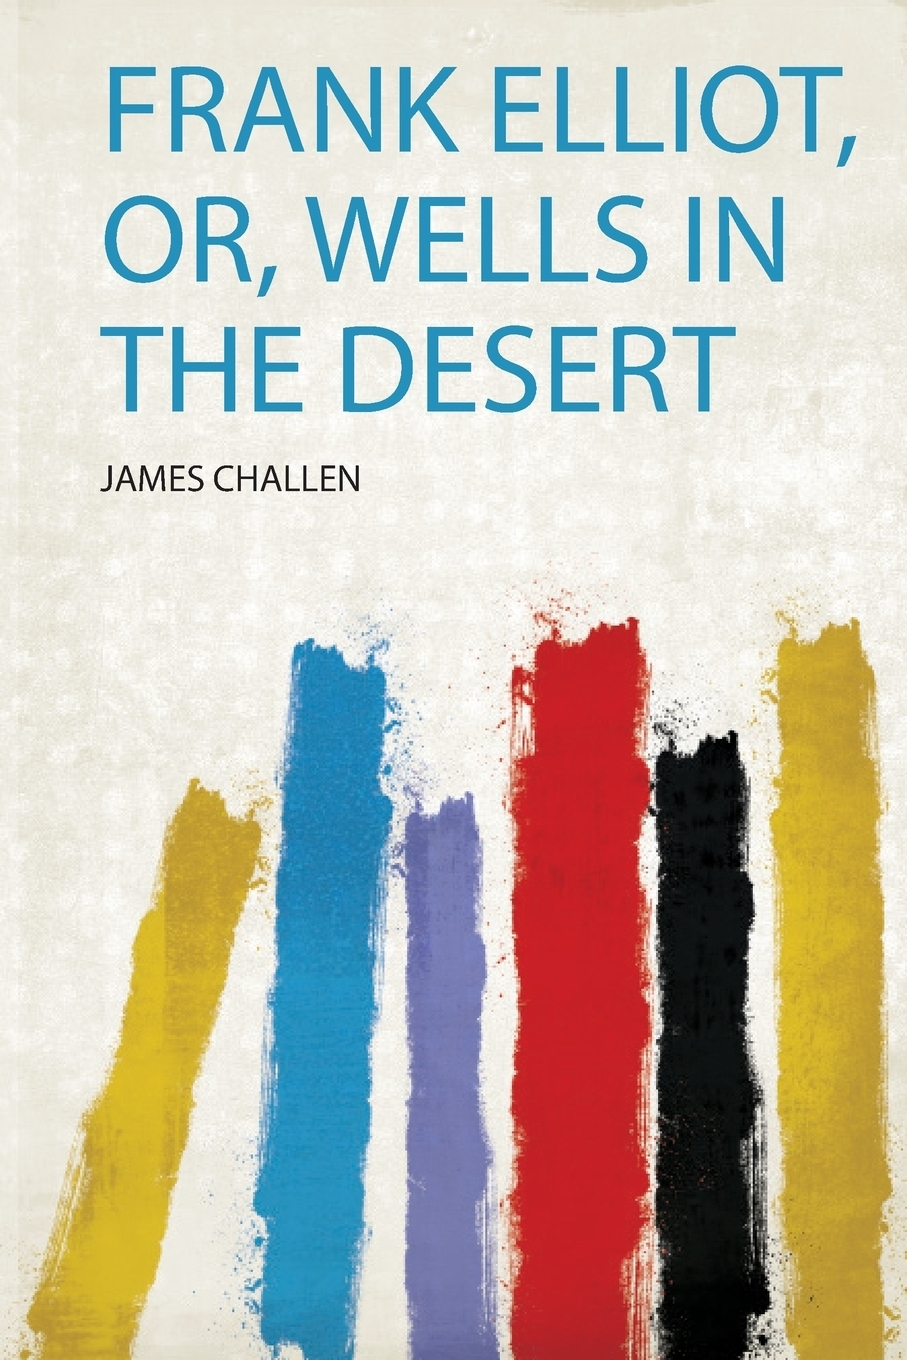 Frank Elliot, Or, Wells in the Desert